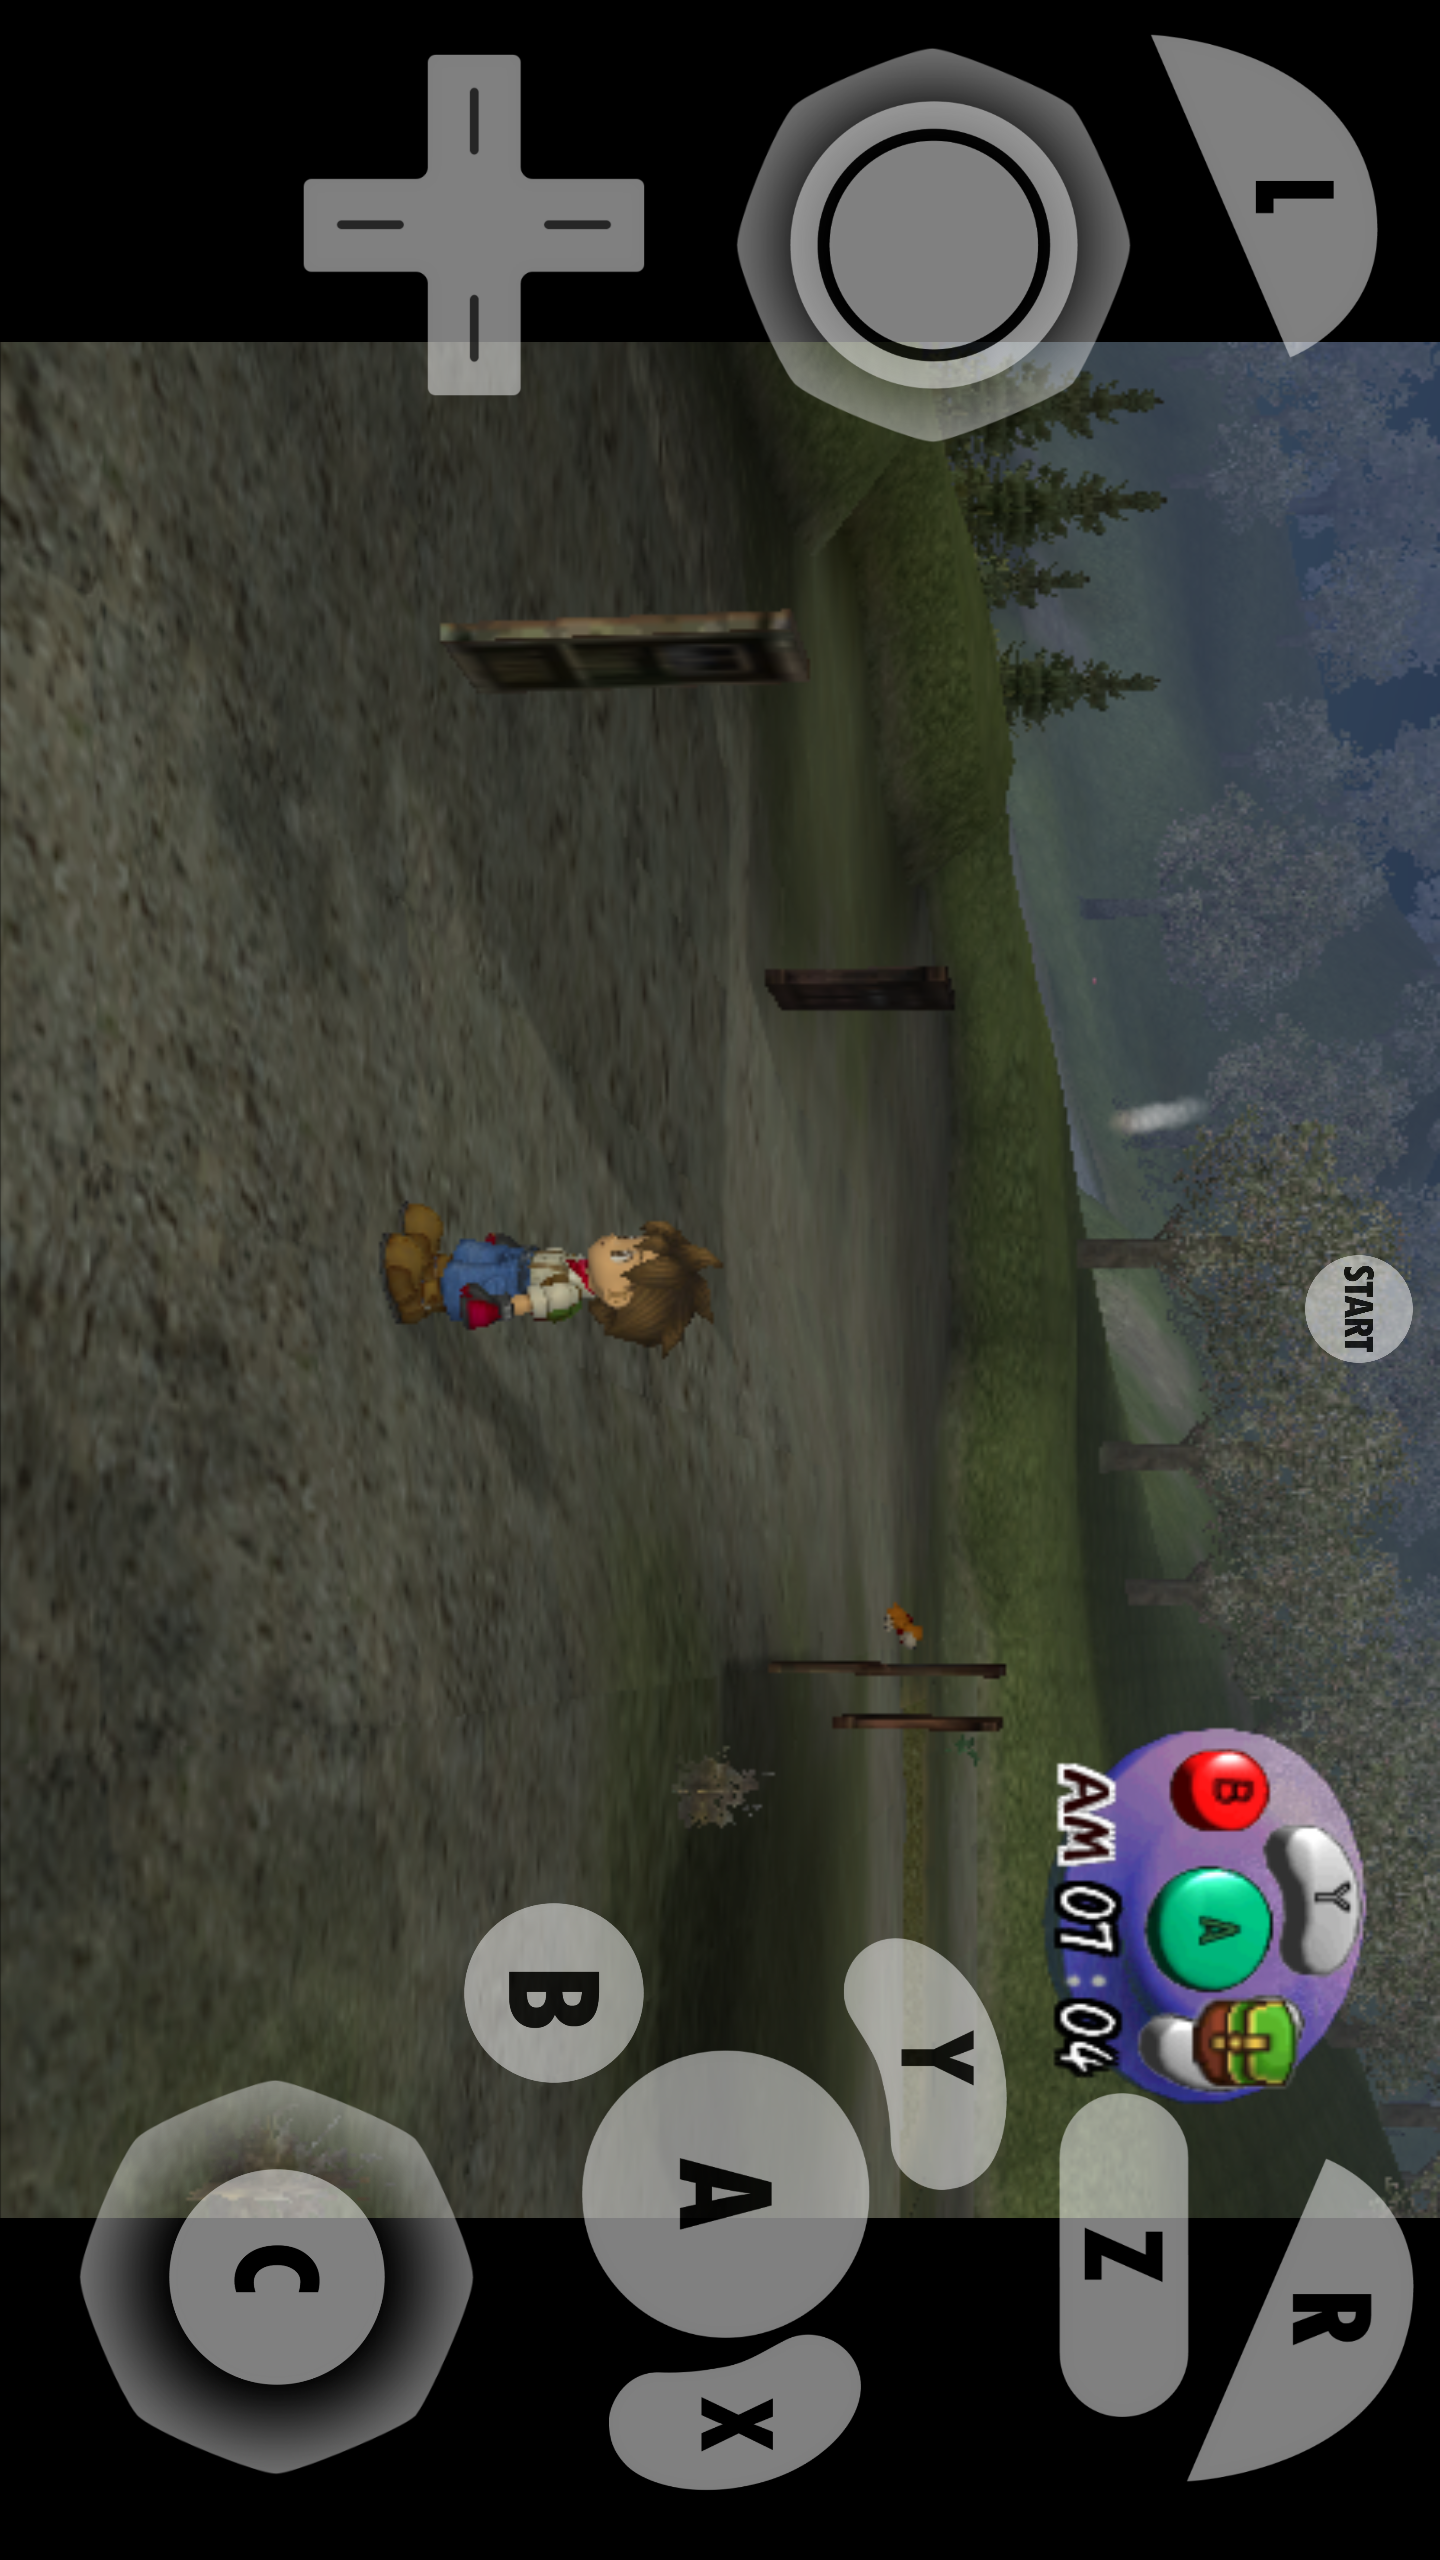 Emulator Issues 9911 Android No Objects In Harvest Moon A